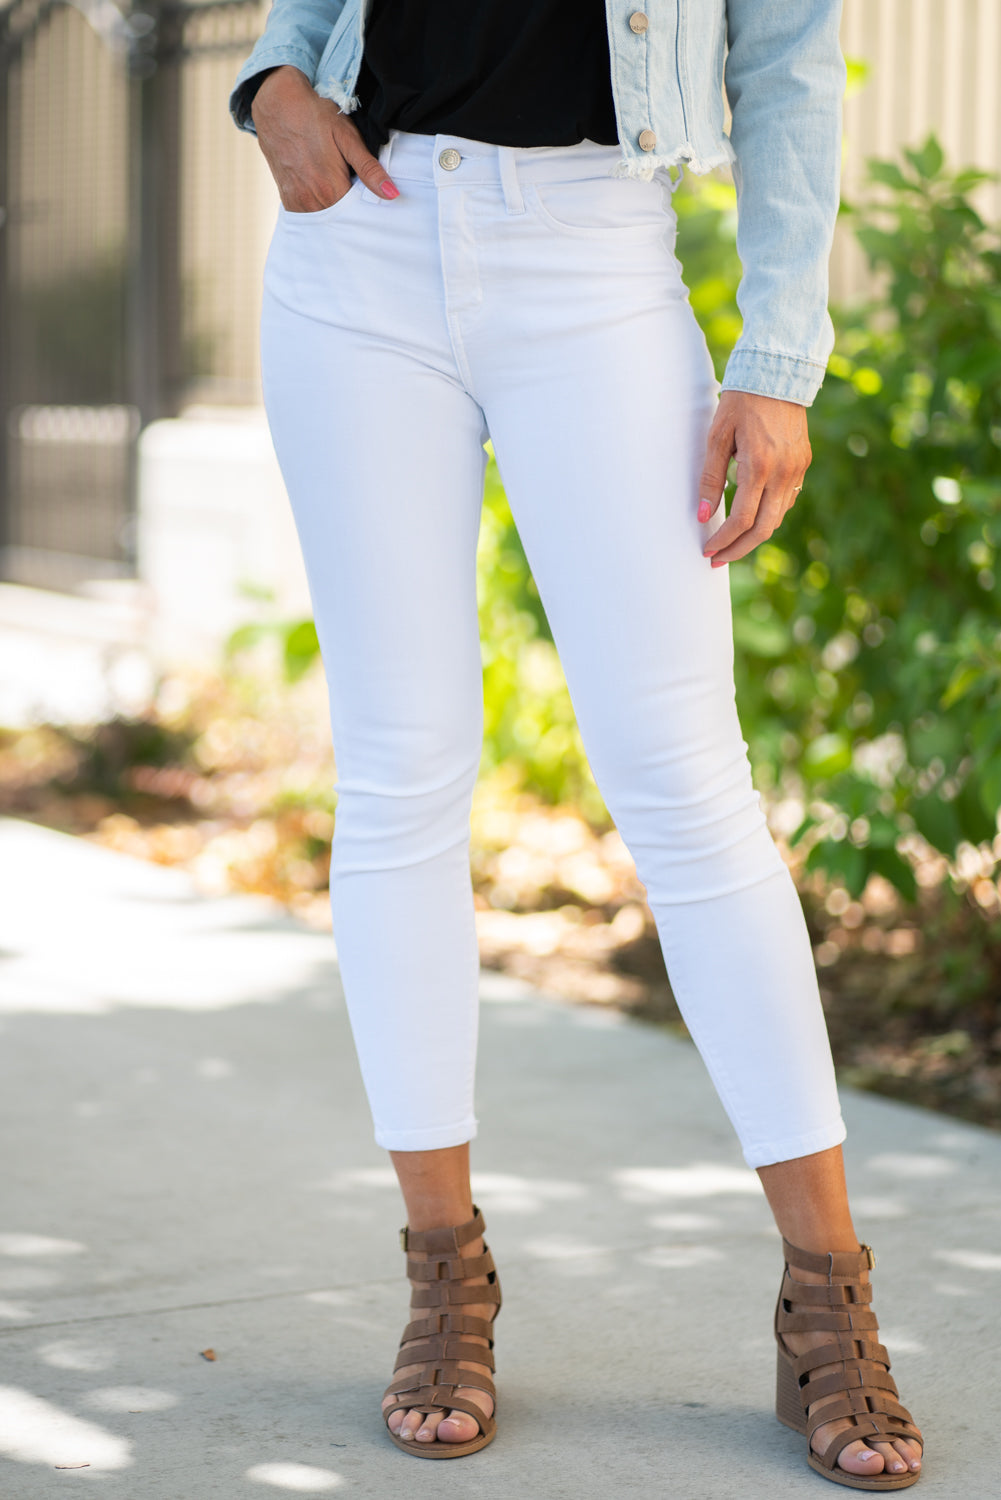 "Flying Monkey Jeans Collection: Summer 2020 Color: Optic White Cut: Ankle Skinny, 27"" skinny Rise: Mid Rise, 8.75"" Front Rise 73% COTTON, 9% RAYON, 16% POLYESTER, 2% SPANDEX Machine Wash Separately In Cold Water Stitching: Classic Fly: Zipper Style #: Y3669 Contact us for any additional measurements or sizing."